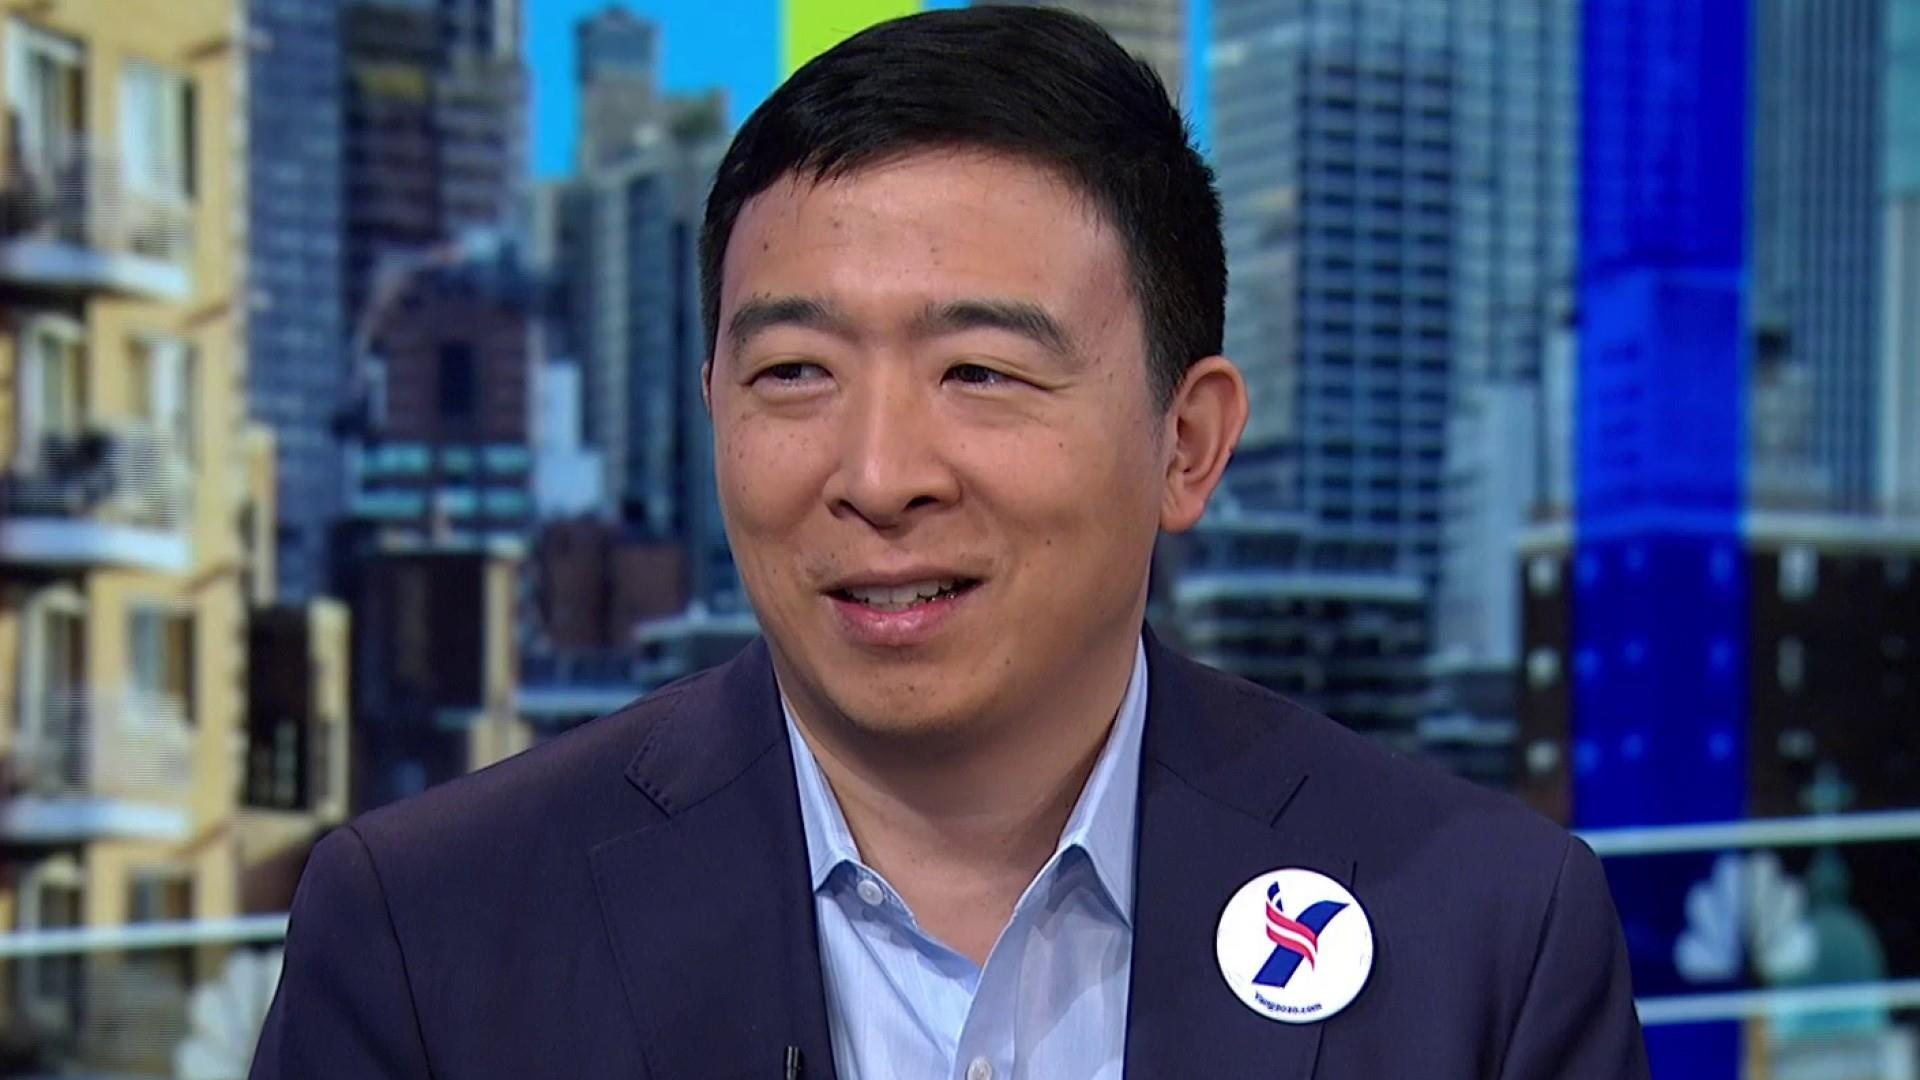 Presidential candidate Yang wants you to have $1,000 a month